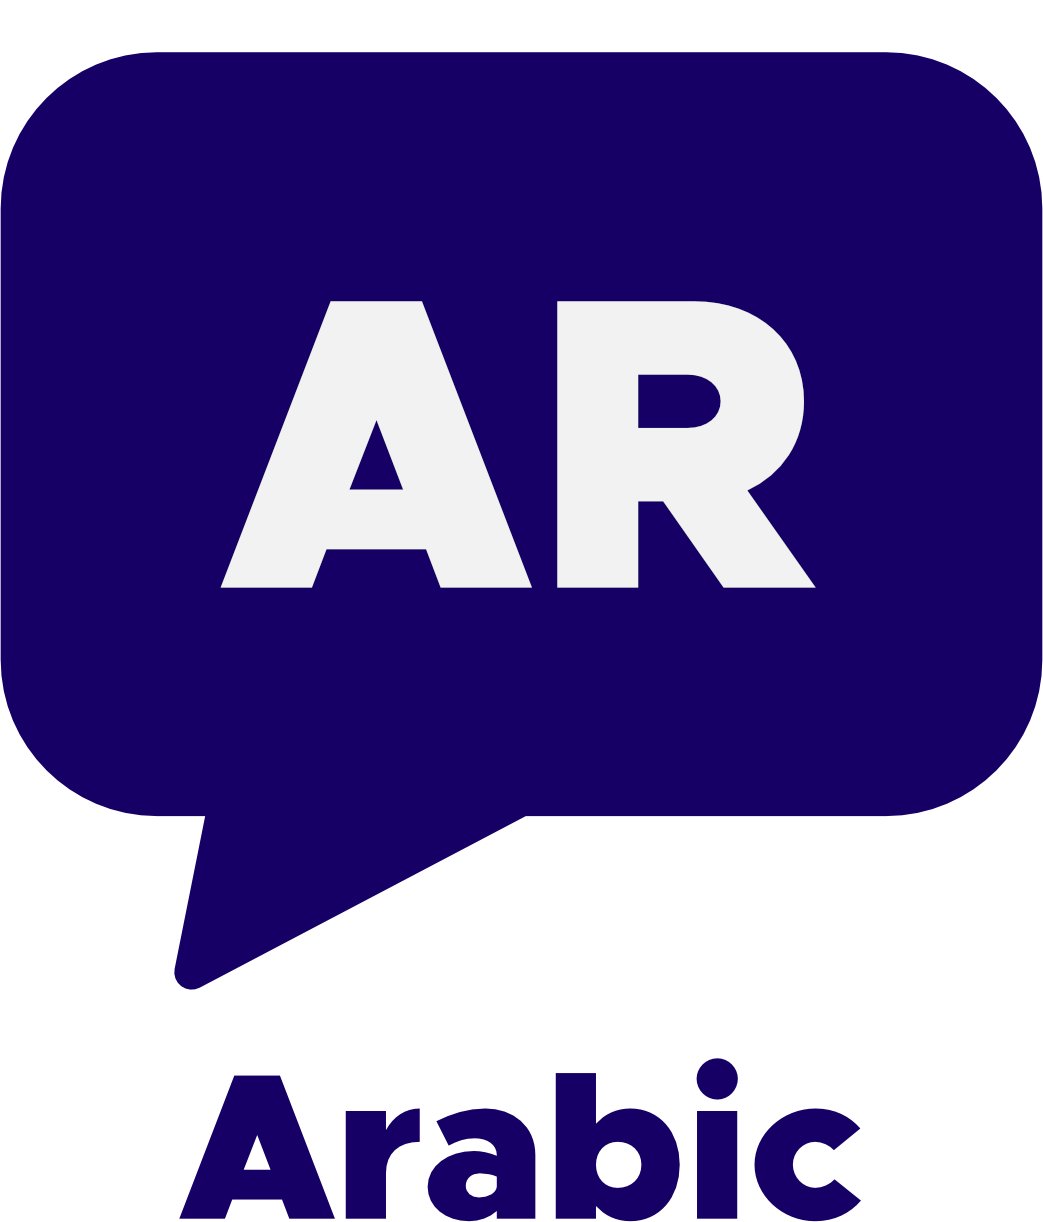 Sygmatic Arabic Language - Learn a language through practical, everyday topics via immersive videos of native speakers